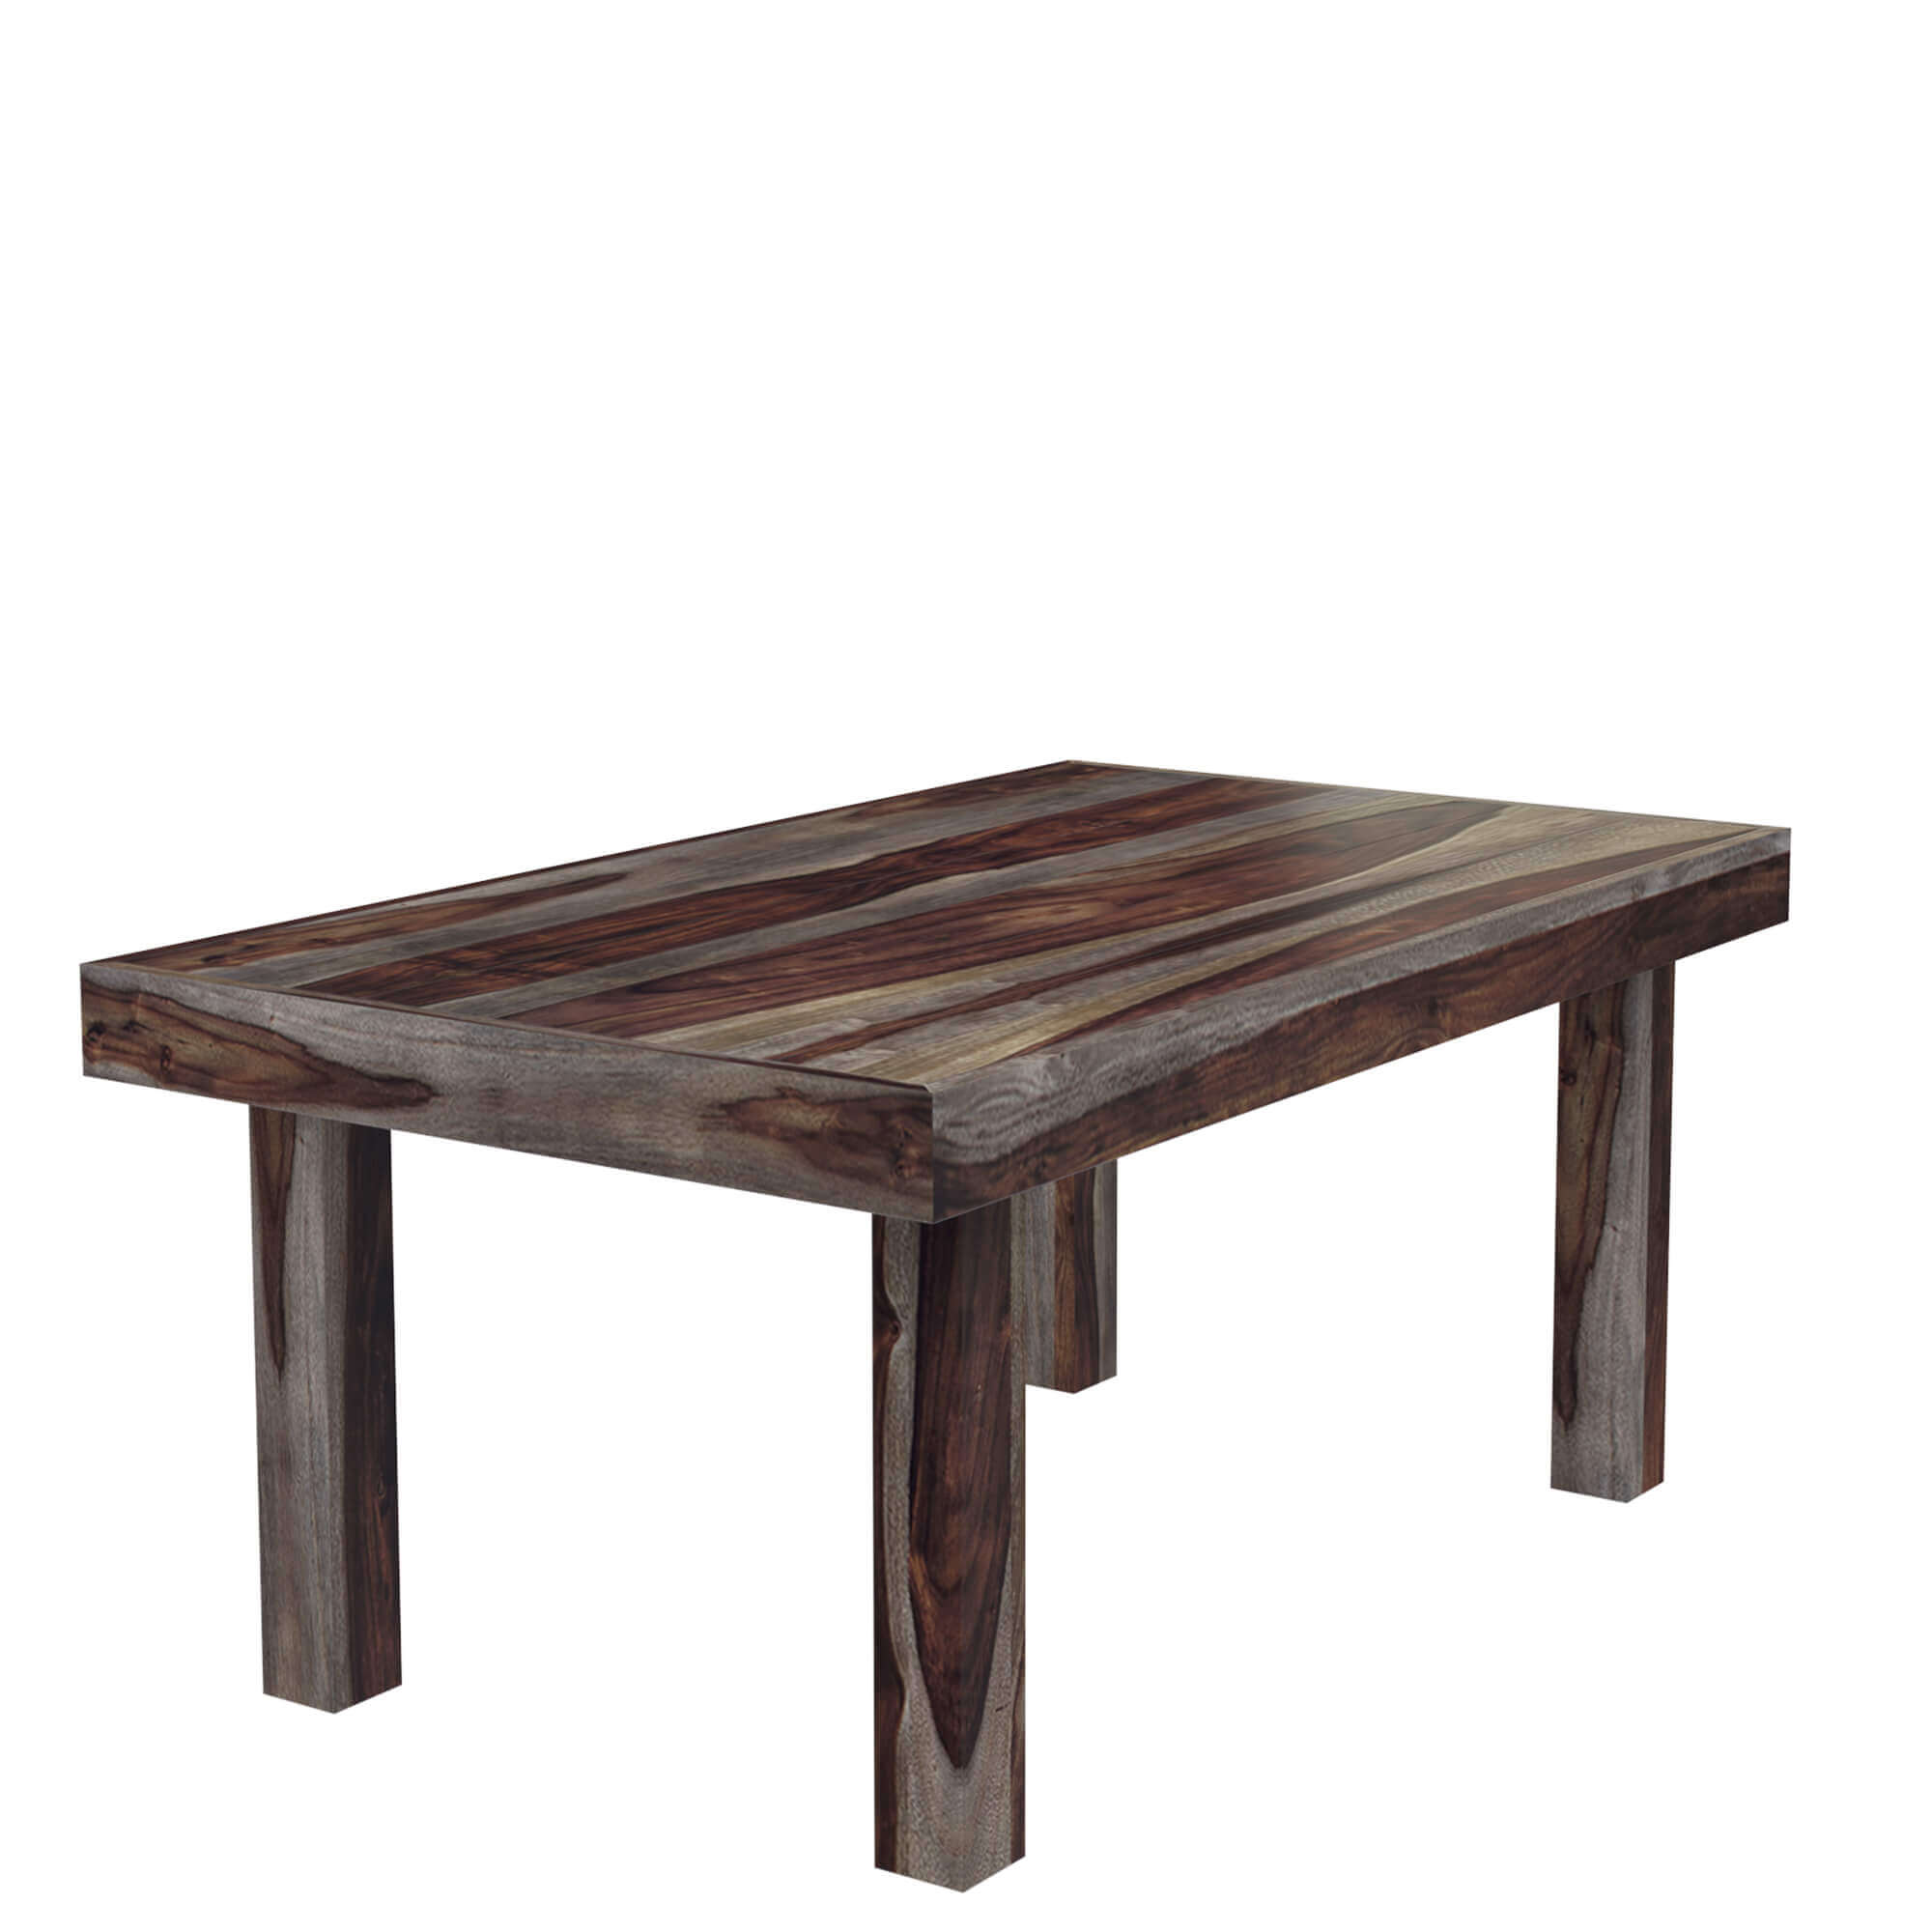 Solid Wood Kitchen Tables: Frisco Modern Solid Wood Rectangular Rustic Dining Room Table